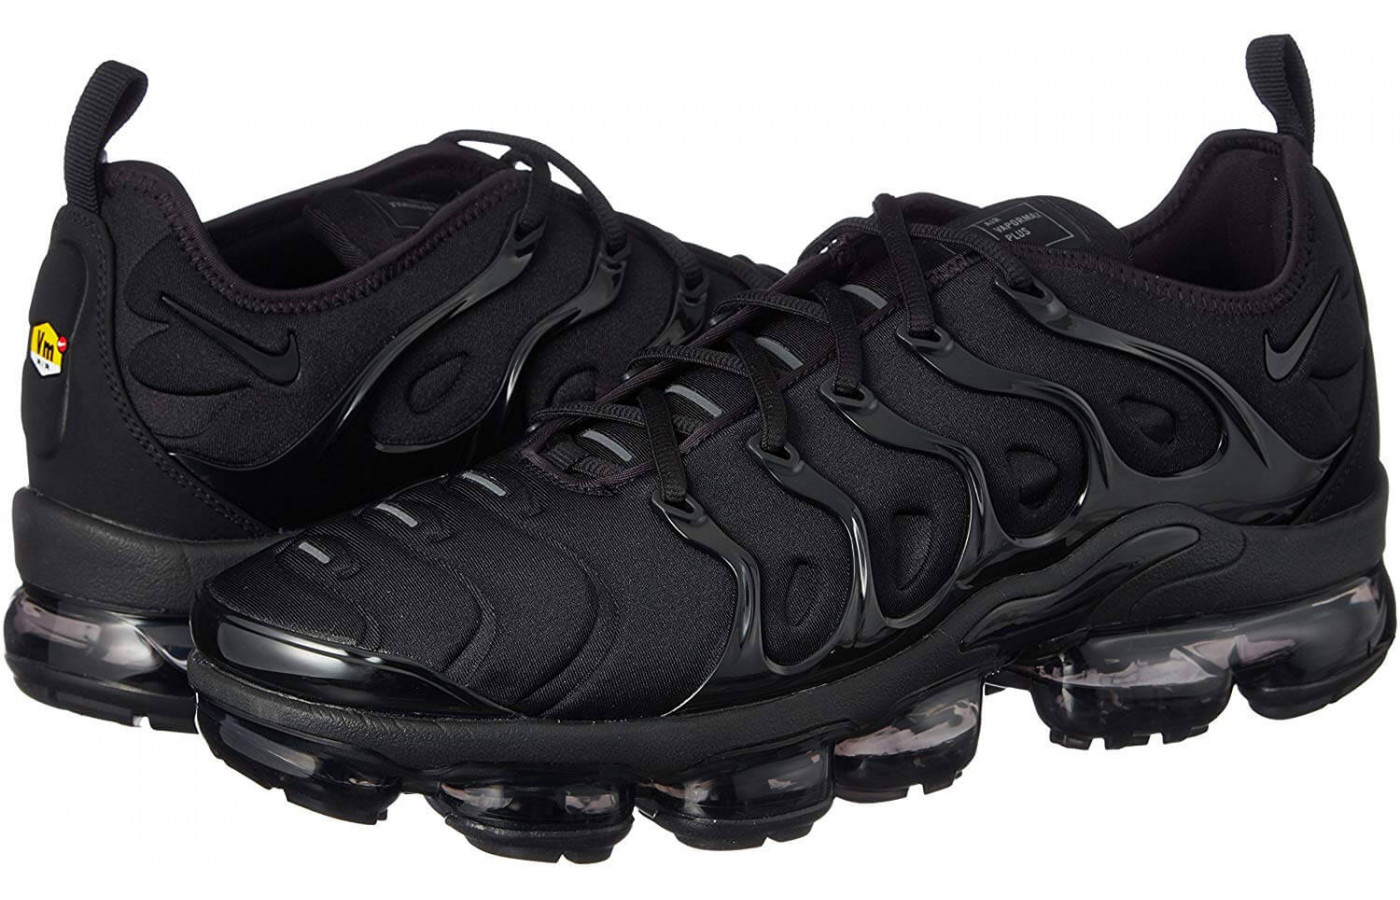 9dd48ef24c125 Nike Air VaporMax Plus Review - Buy or Not in May 2019